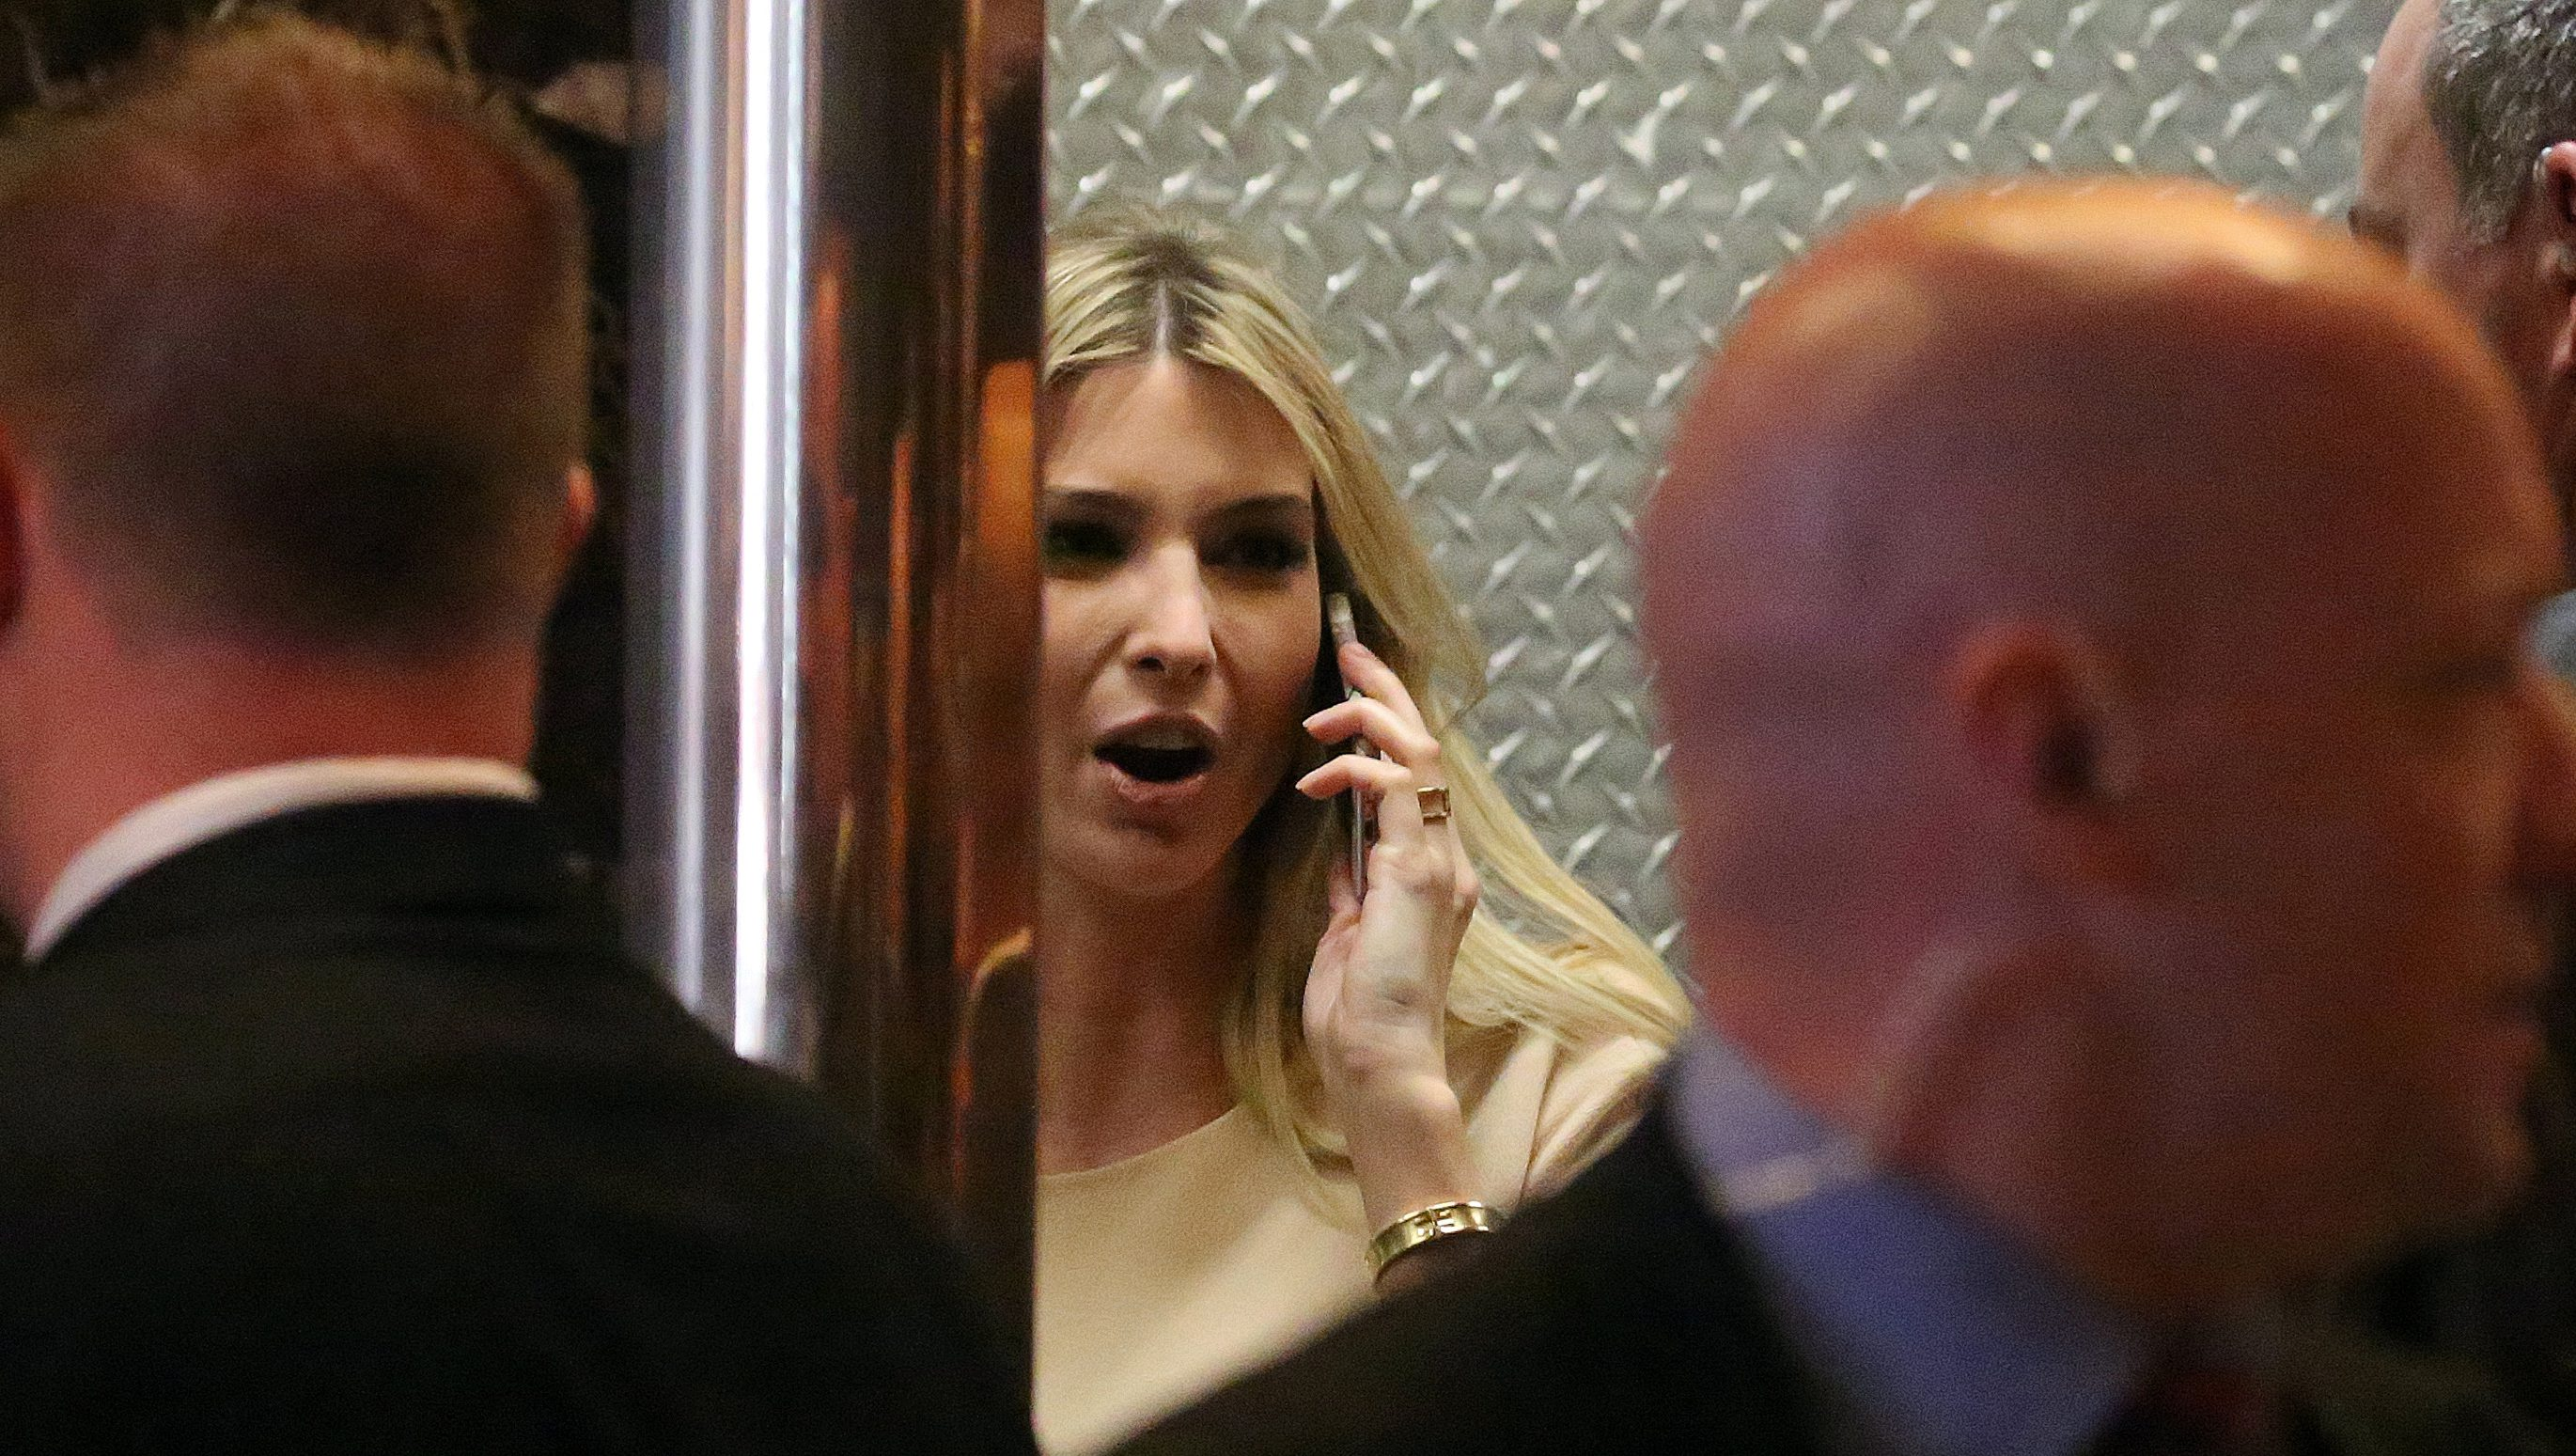 Republican President-elect Donald Trump's daughter Ivanka Trump arrives at Trump Tower in New York, New York, U.S., November 11, 2016. REUTERS/Carlo Allegri - RTX2T985